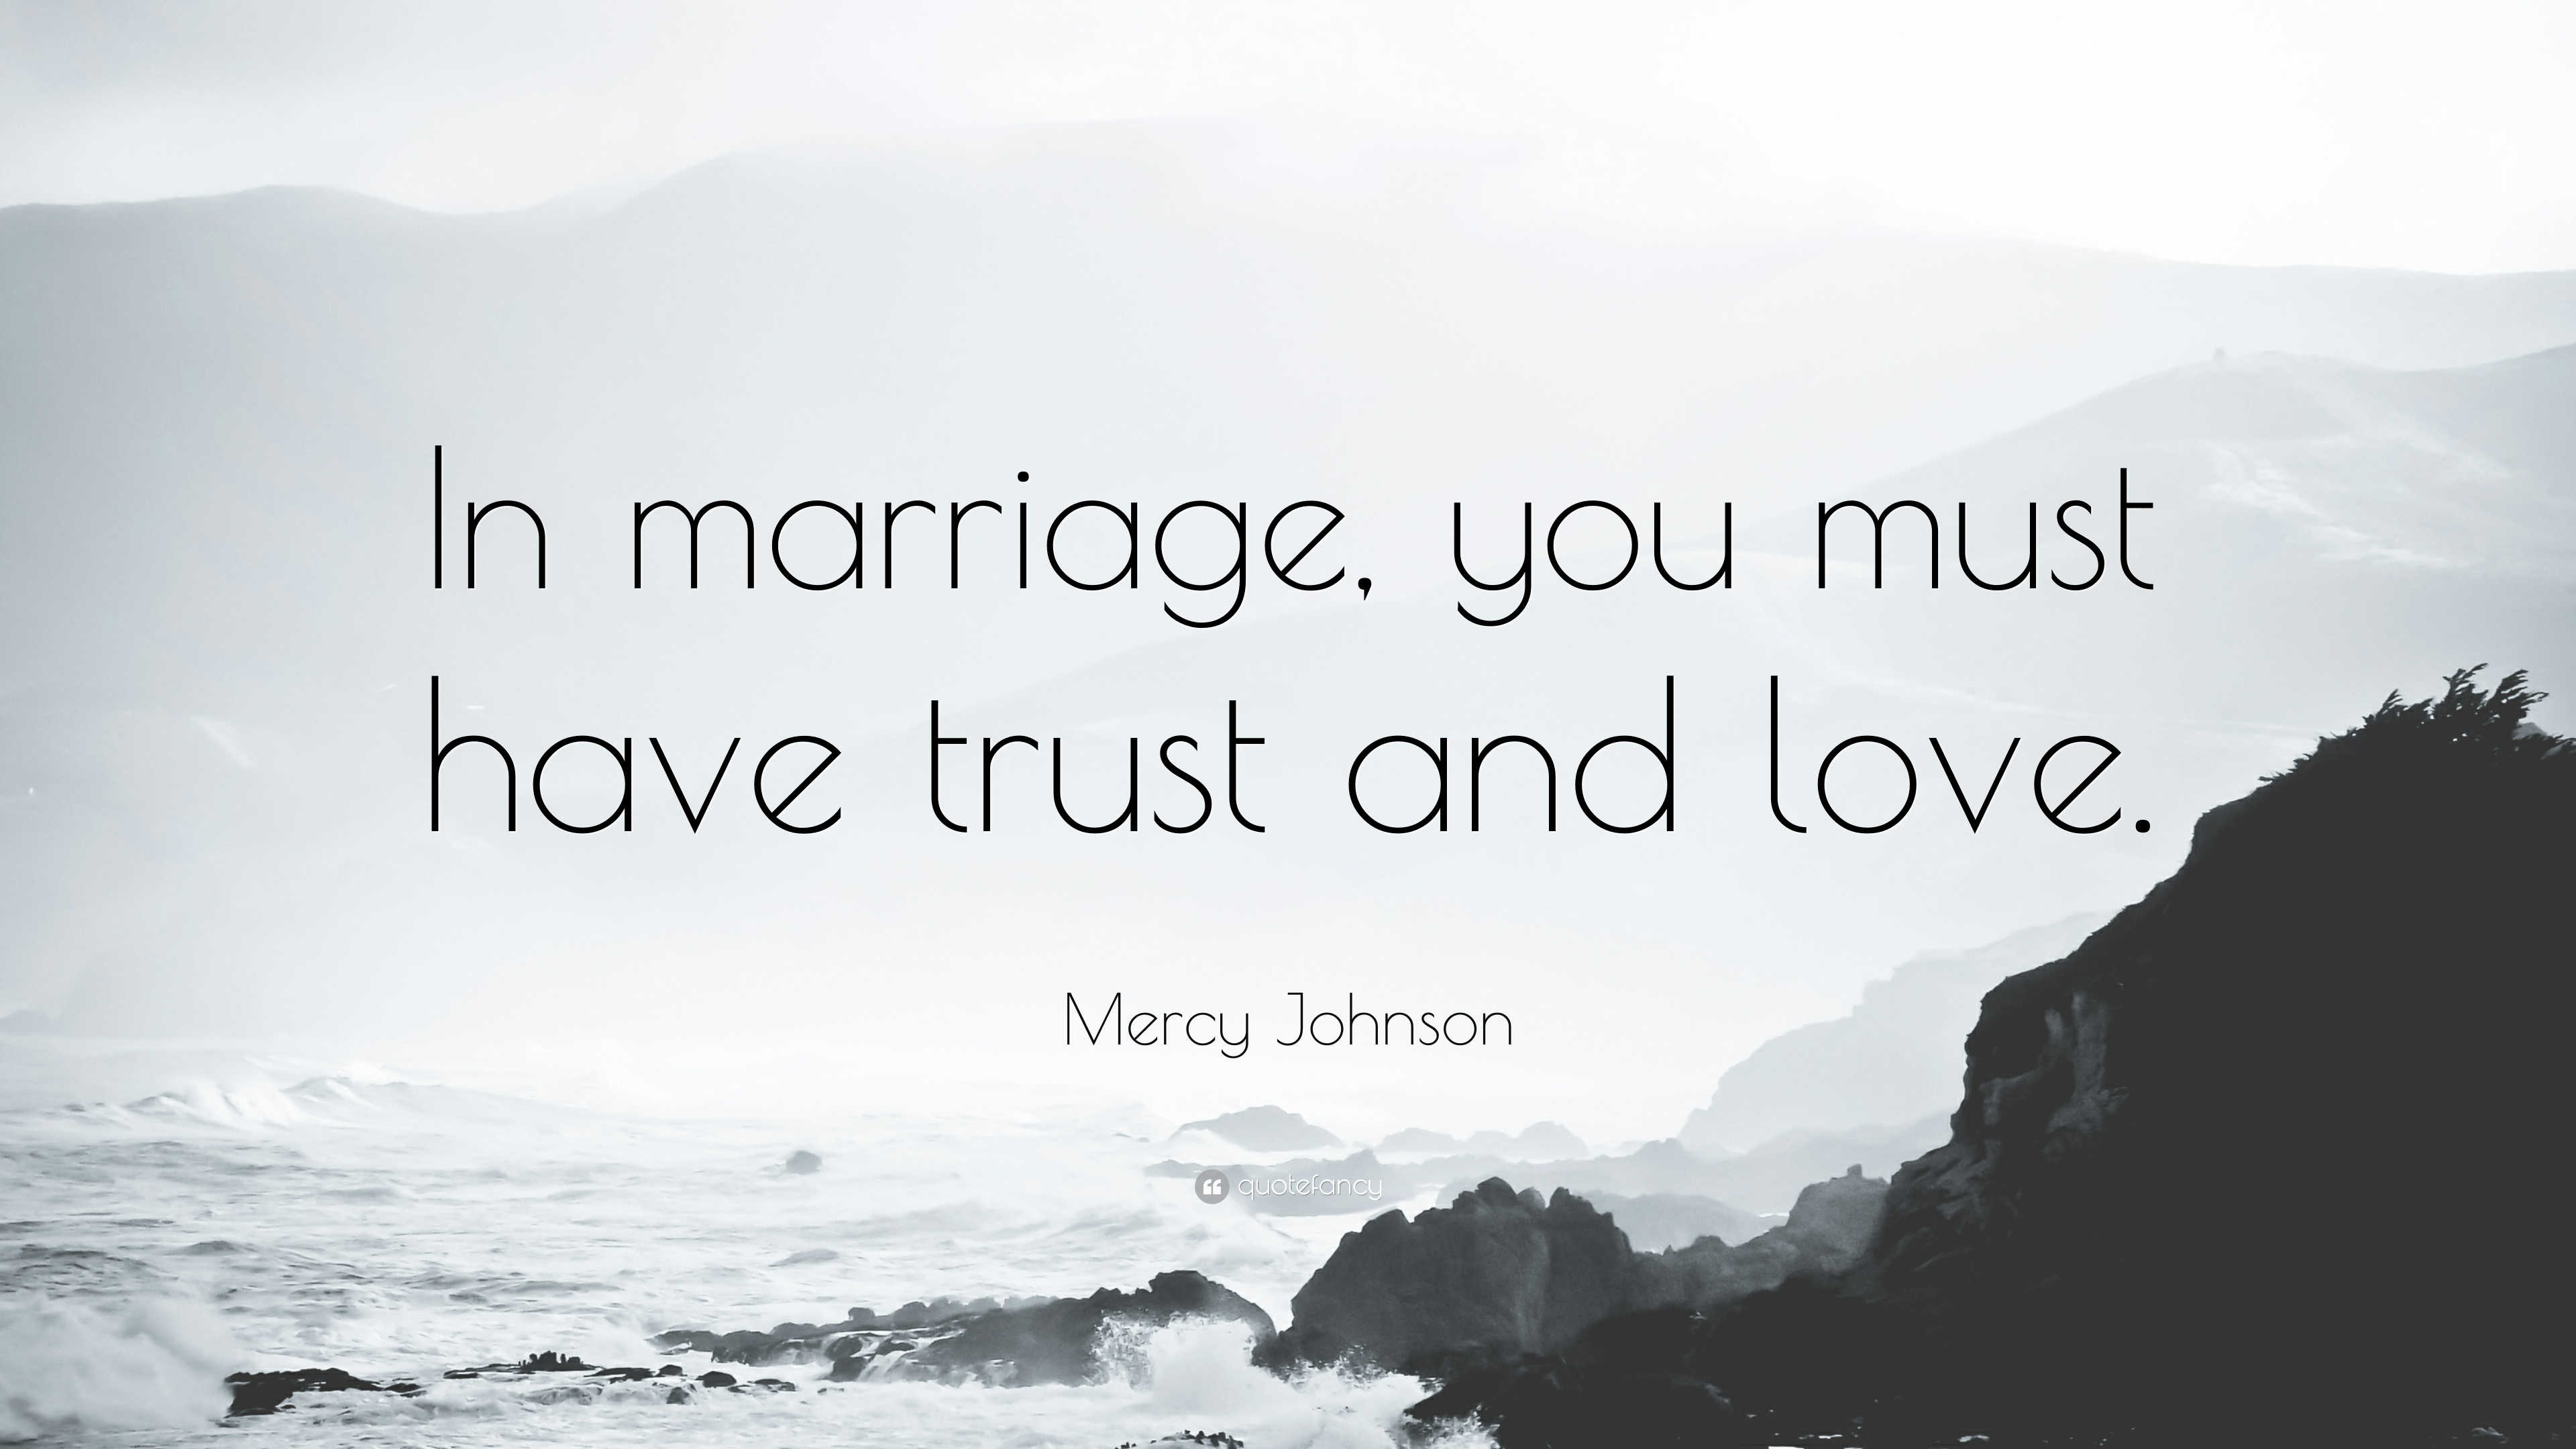 Quotes Love Marriage Best Marriage Quotes Love  Page 7  The Best Love Quotes